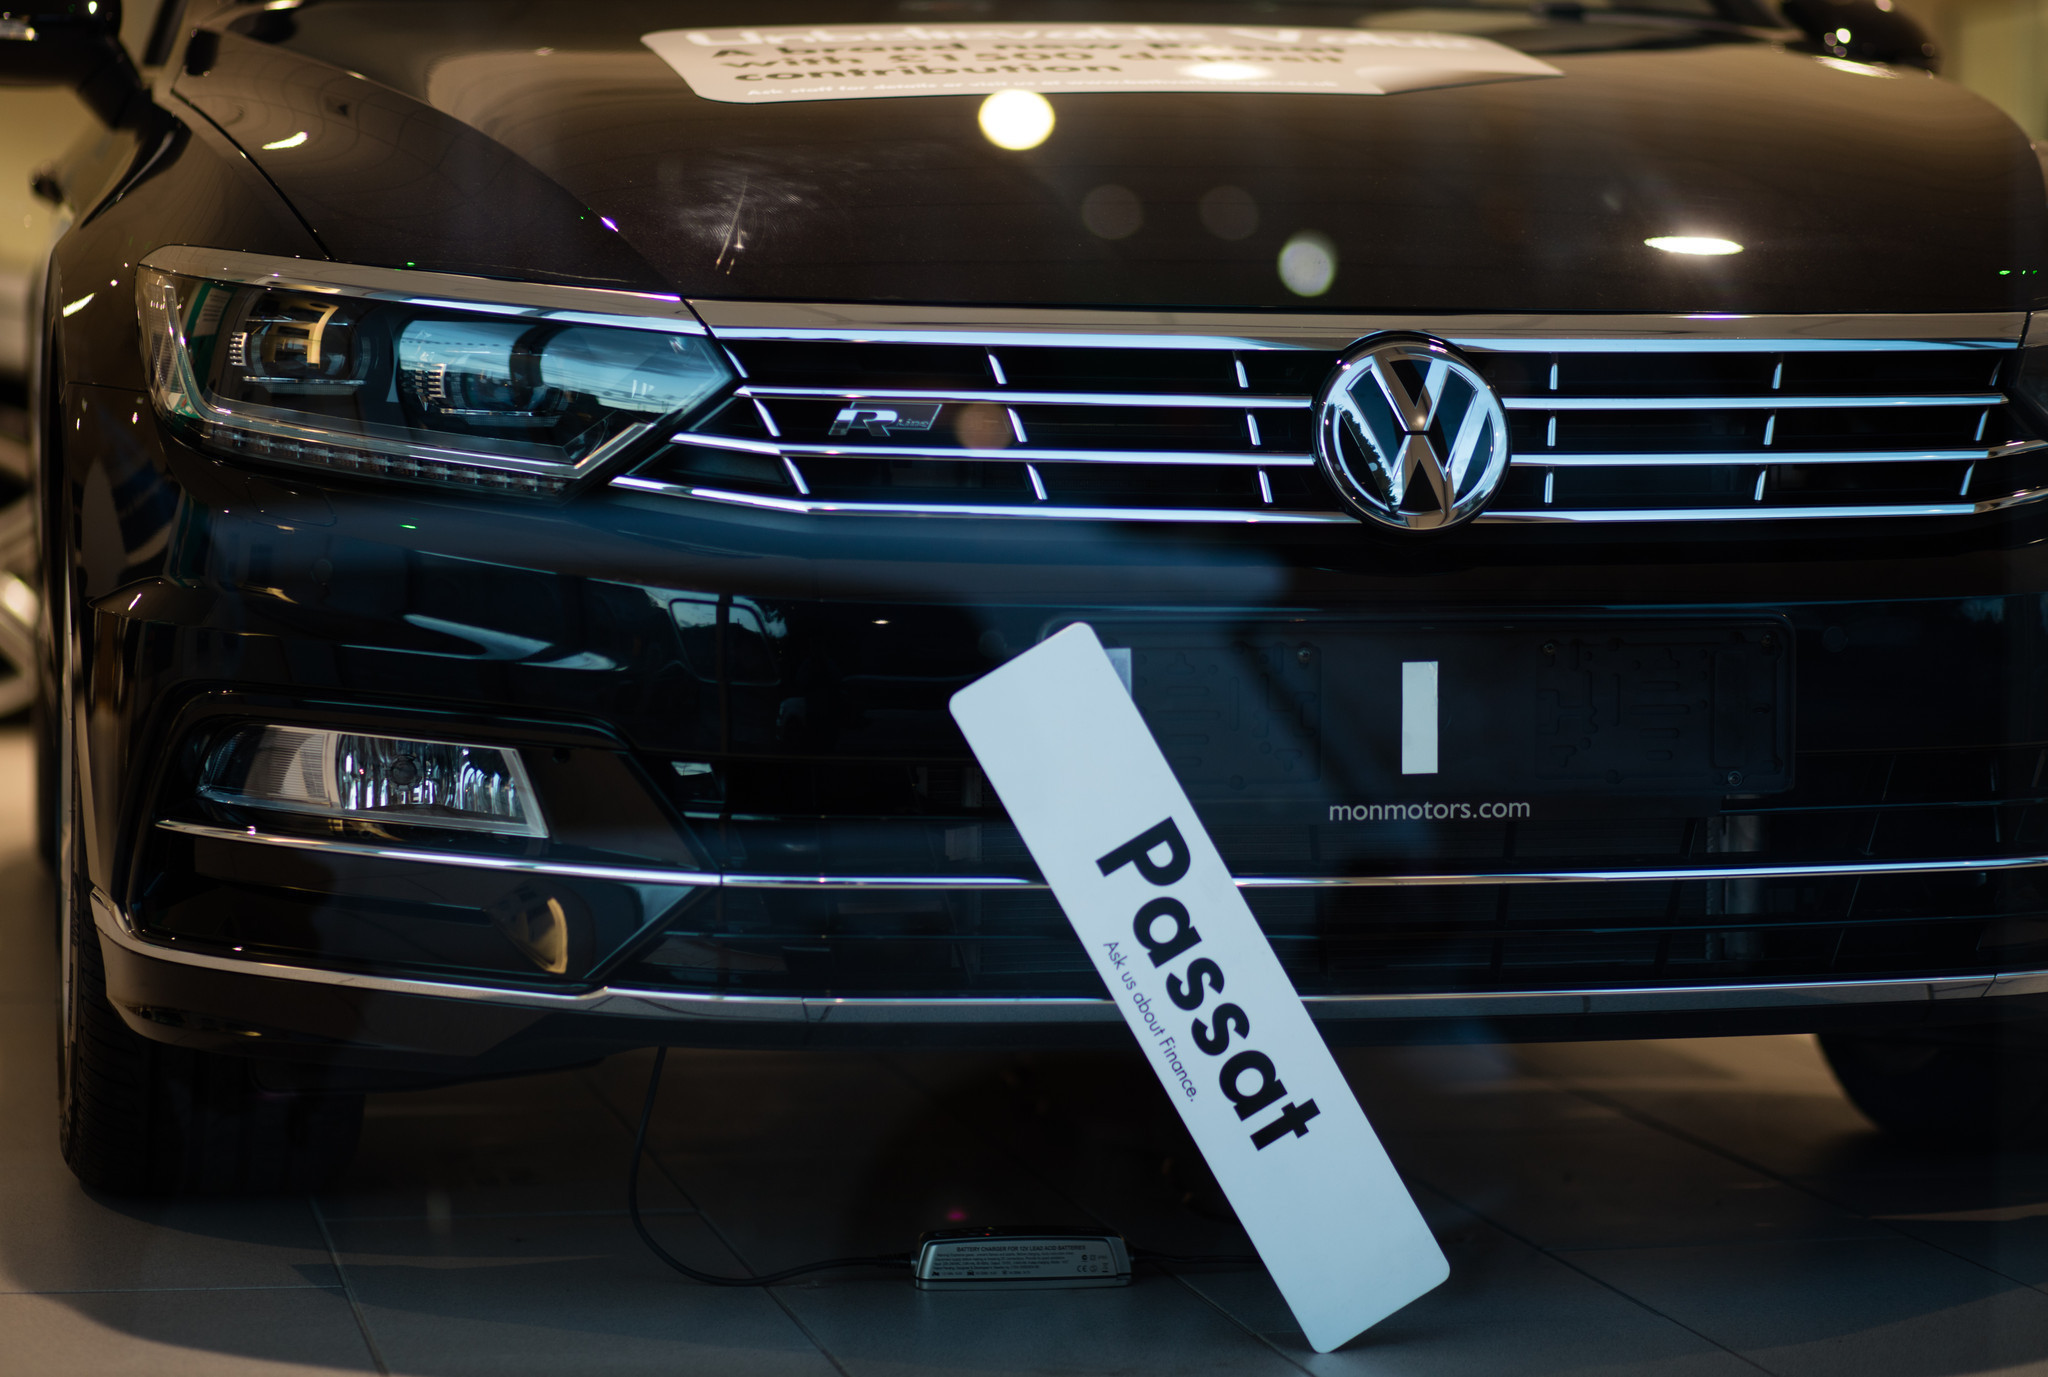 md maryland scandal sun dealership baltimore volkswagen sues over lawsuit bs story news emissions